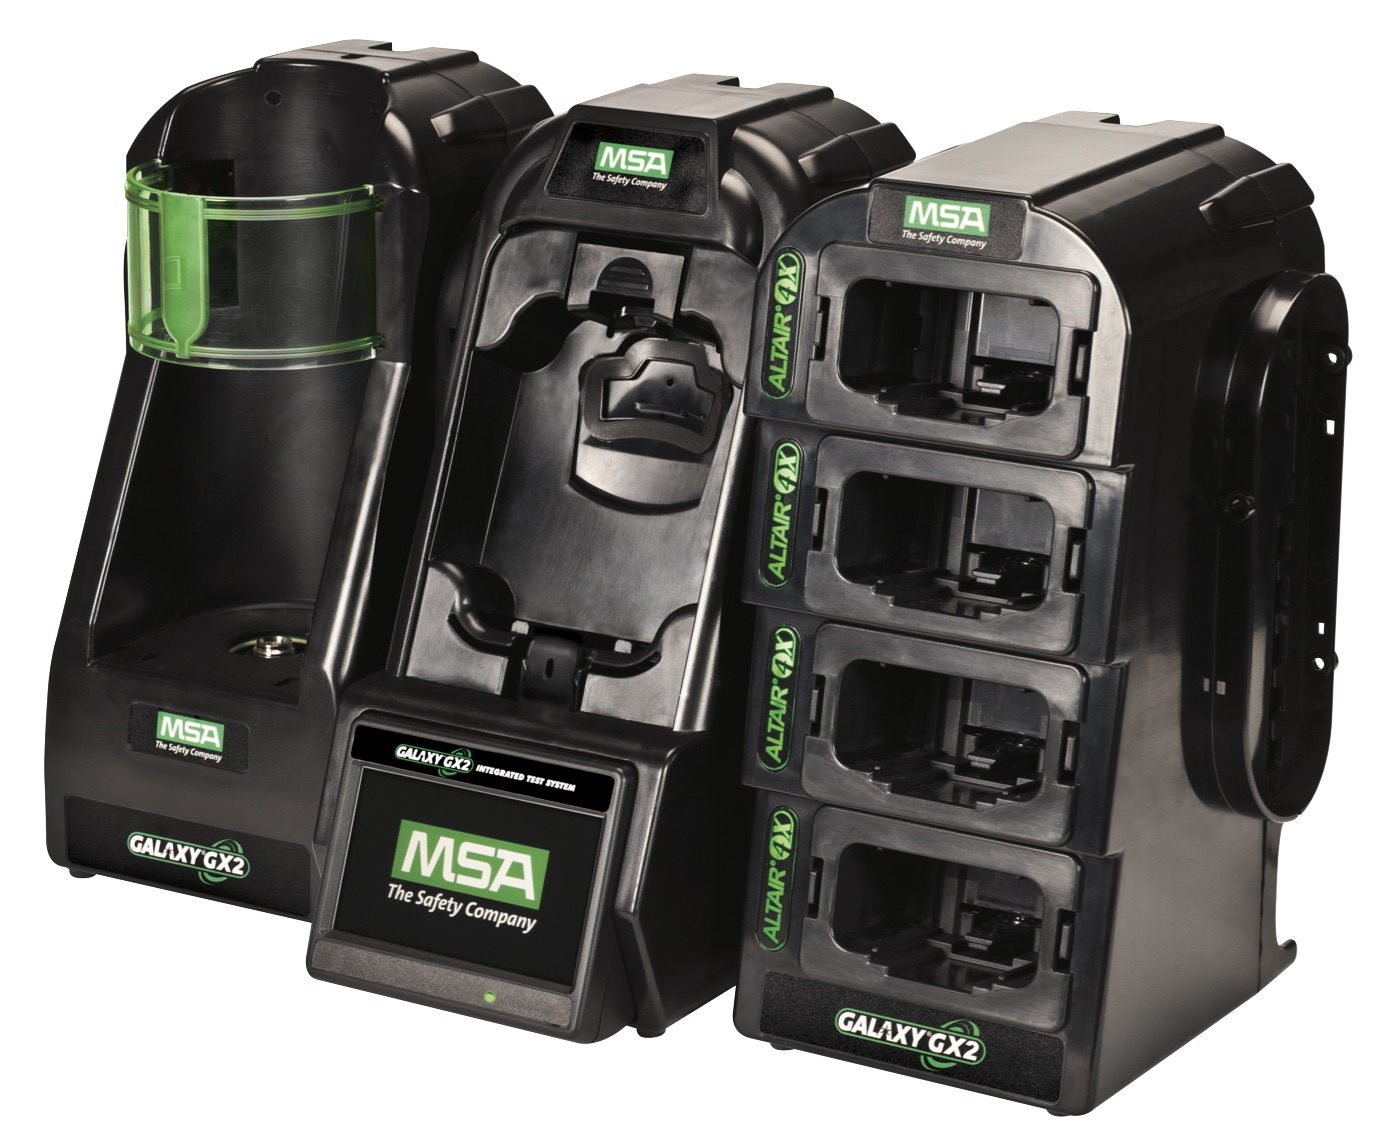 Galaxy GX2 Automated Test & Calibration Station